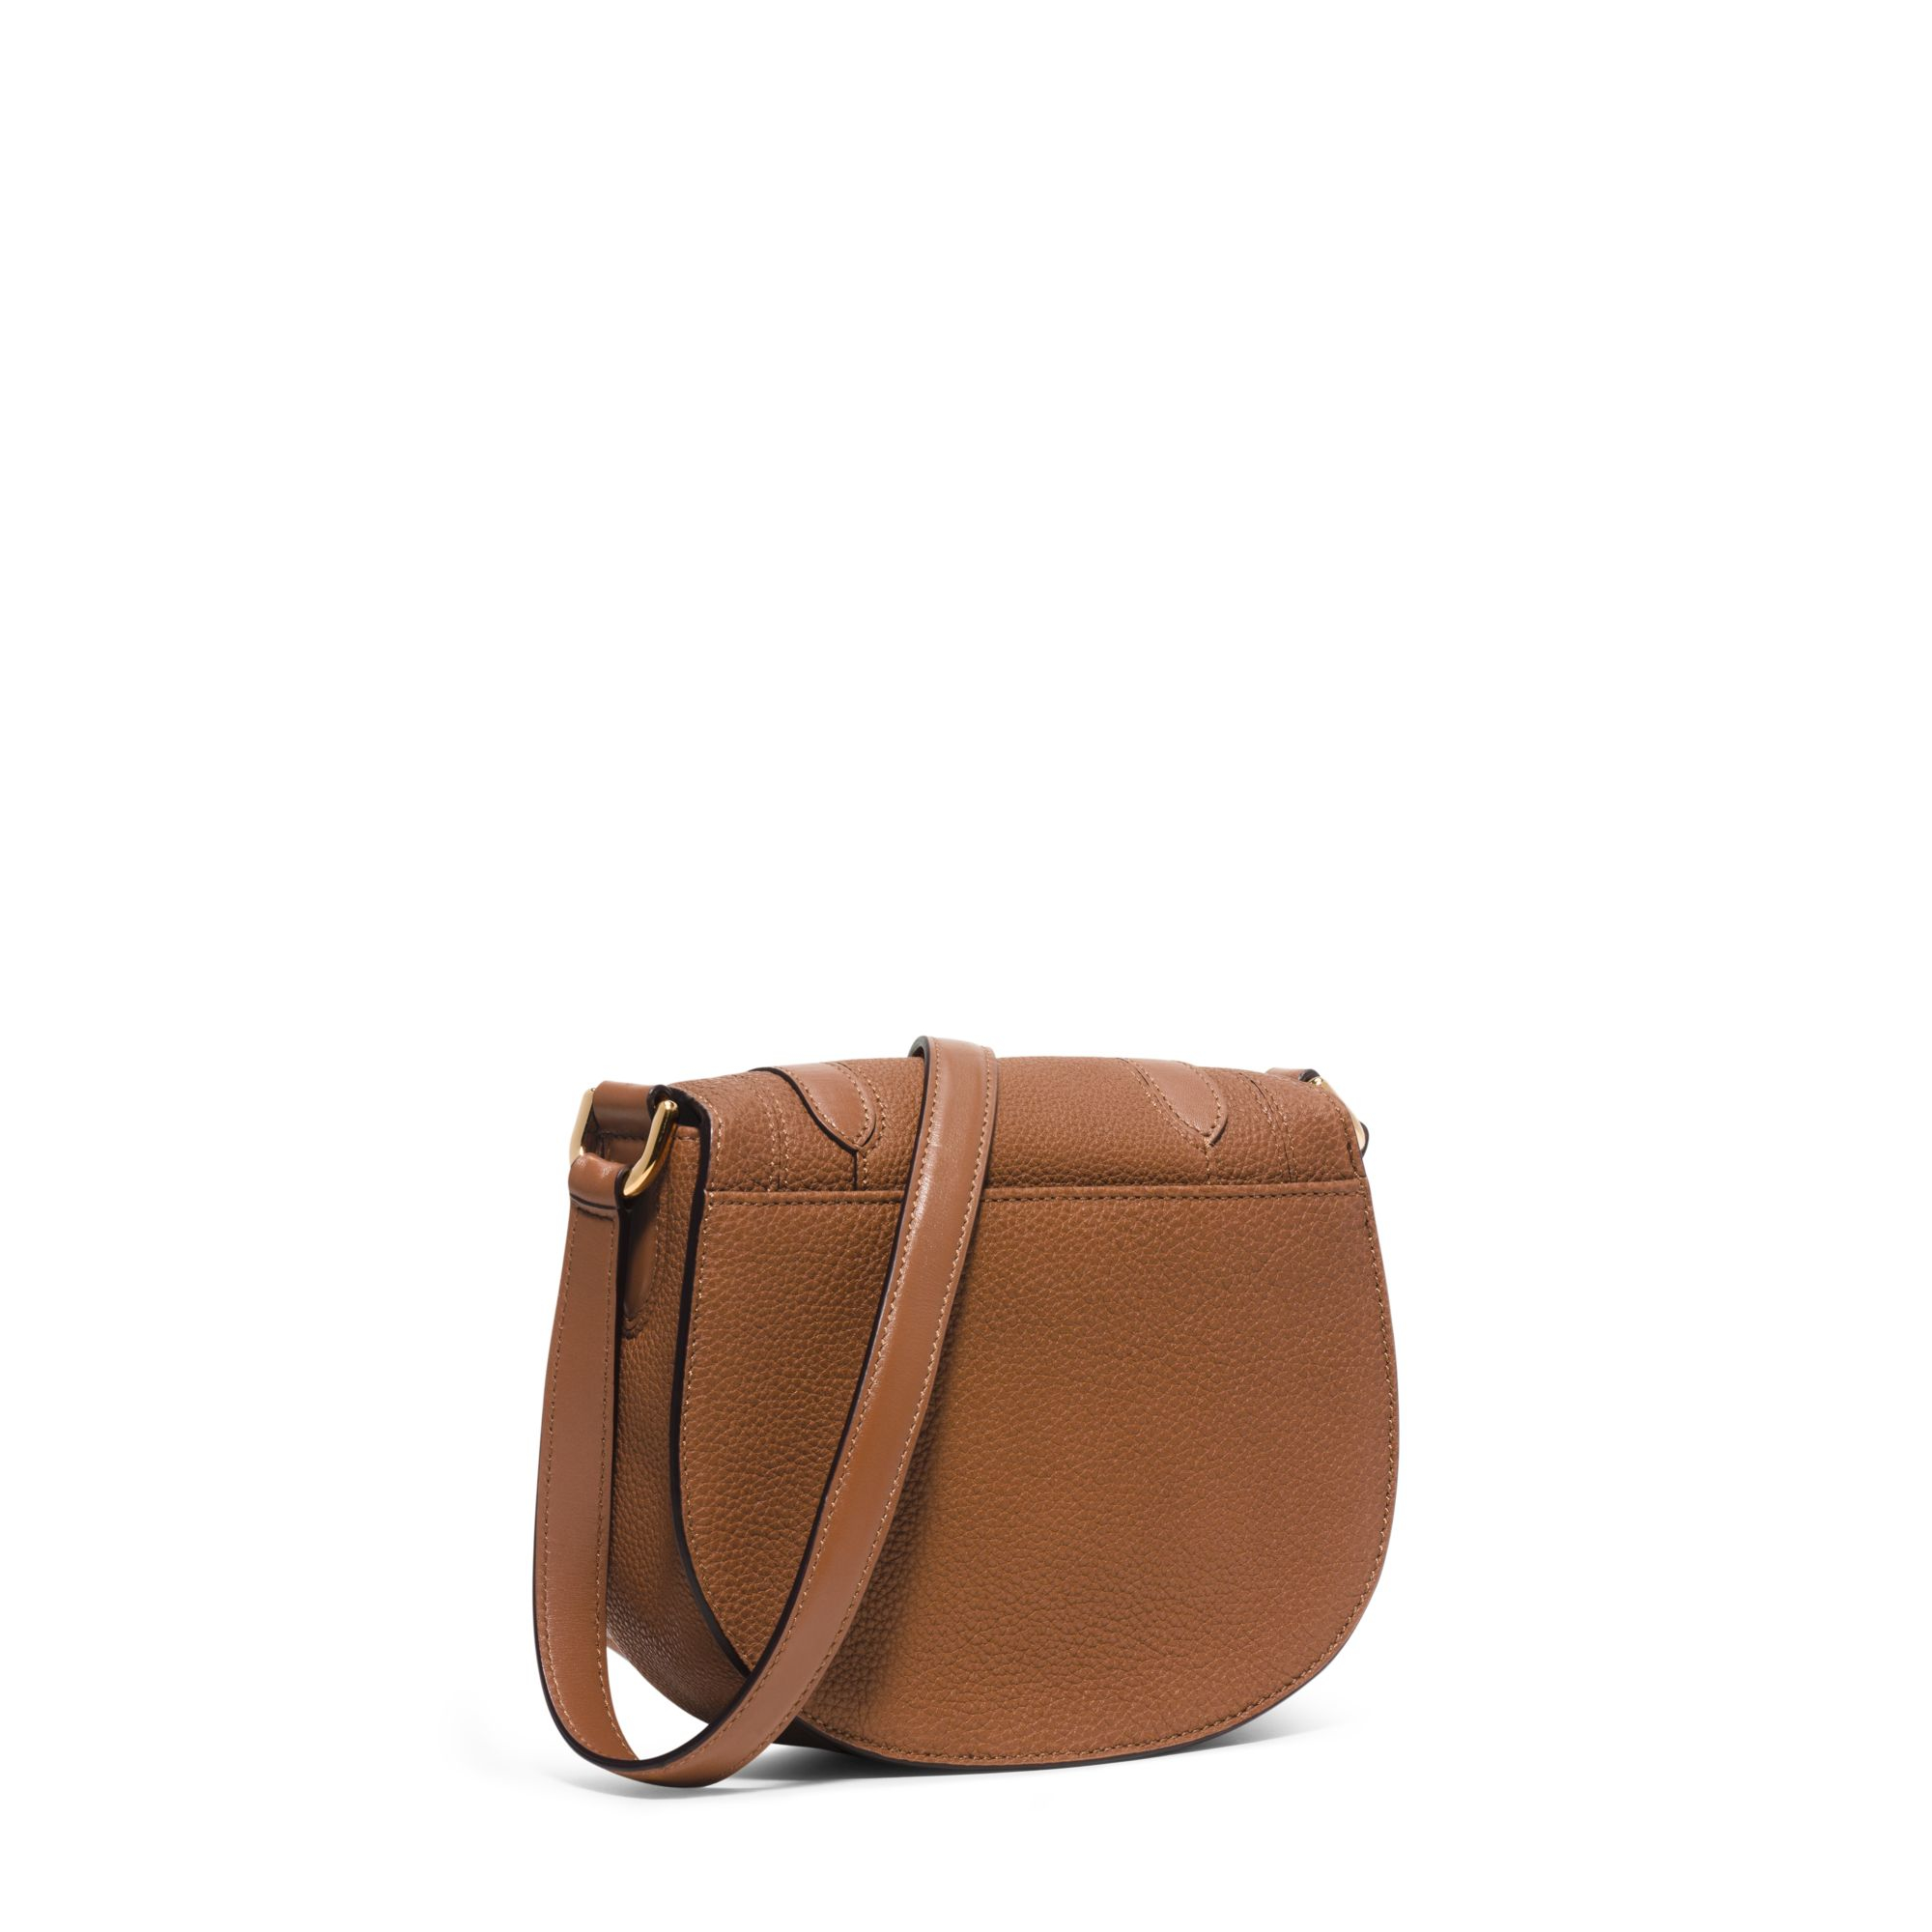 5b2639571980 Lyst - Michael Kors Skorpios Small Leather Crossbody in Brown